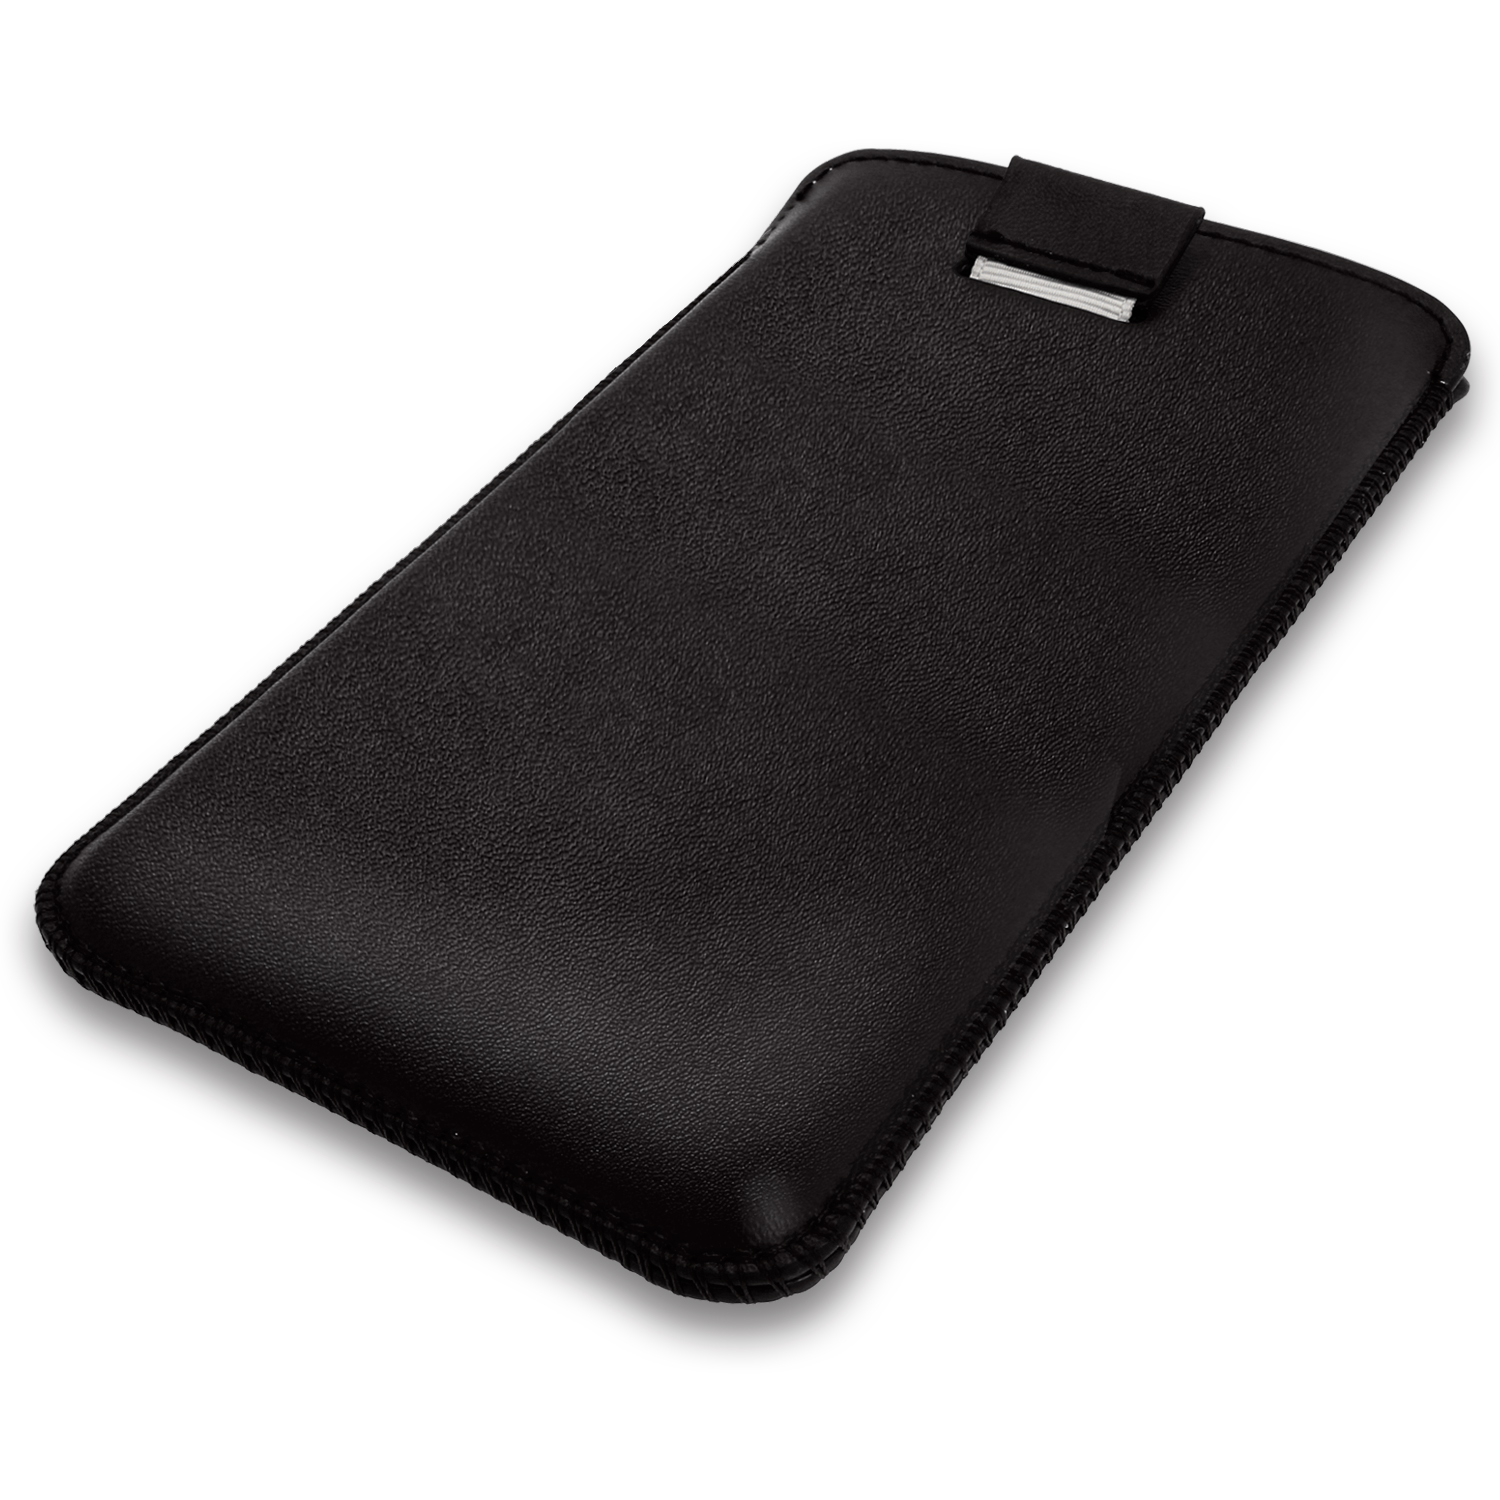 the latest 365df d8fa8 Details about Leather Pouch Skin Case for Samsung Galaxy A5 SM-A510 (2016)  Cover Pull Tab